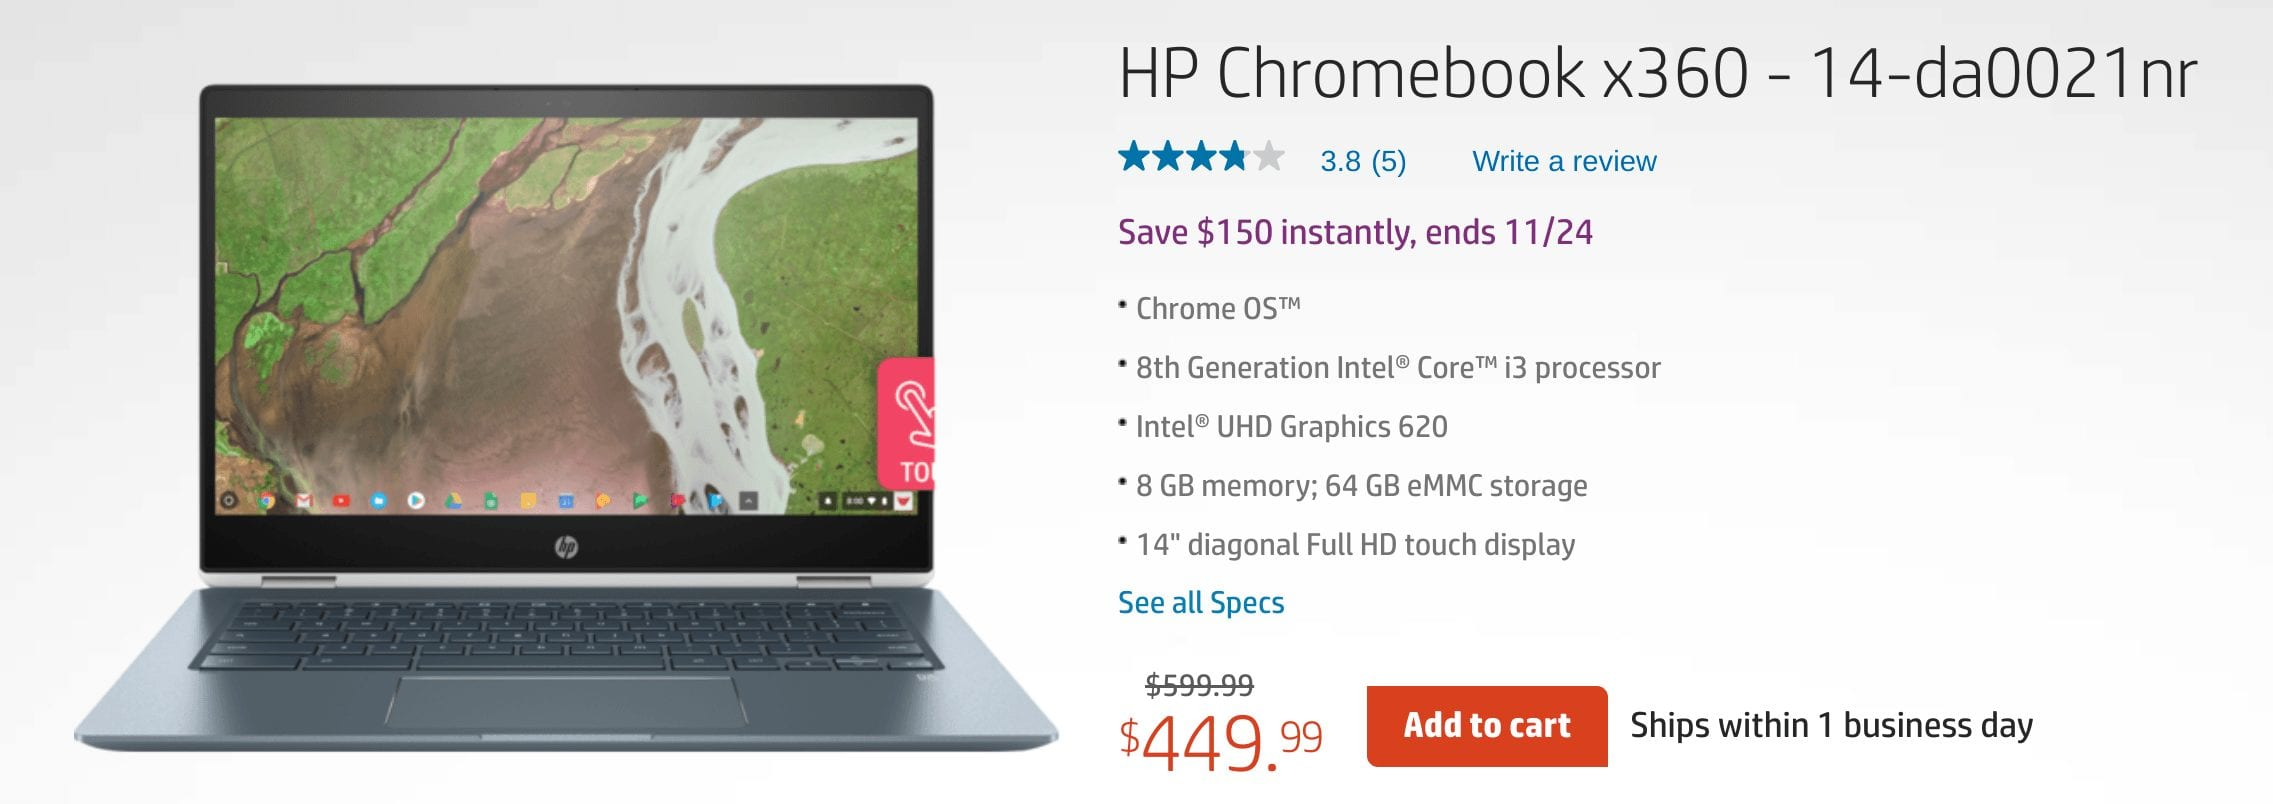 HP Chromebook X360 Black Friday 2018 – About Chromebooks